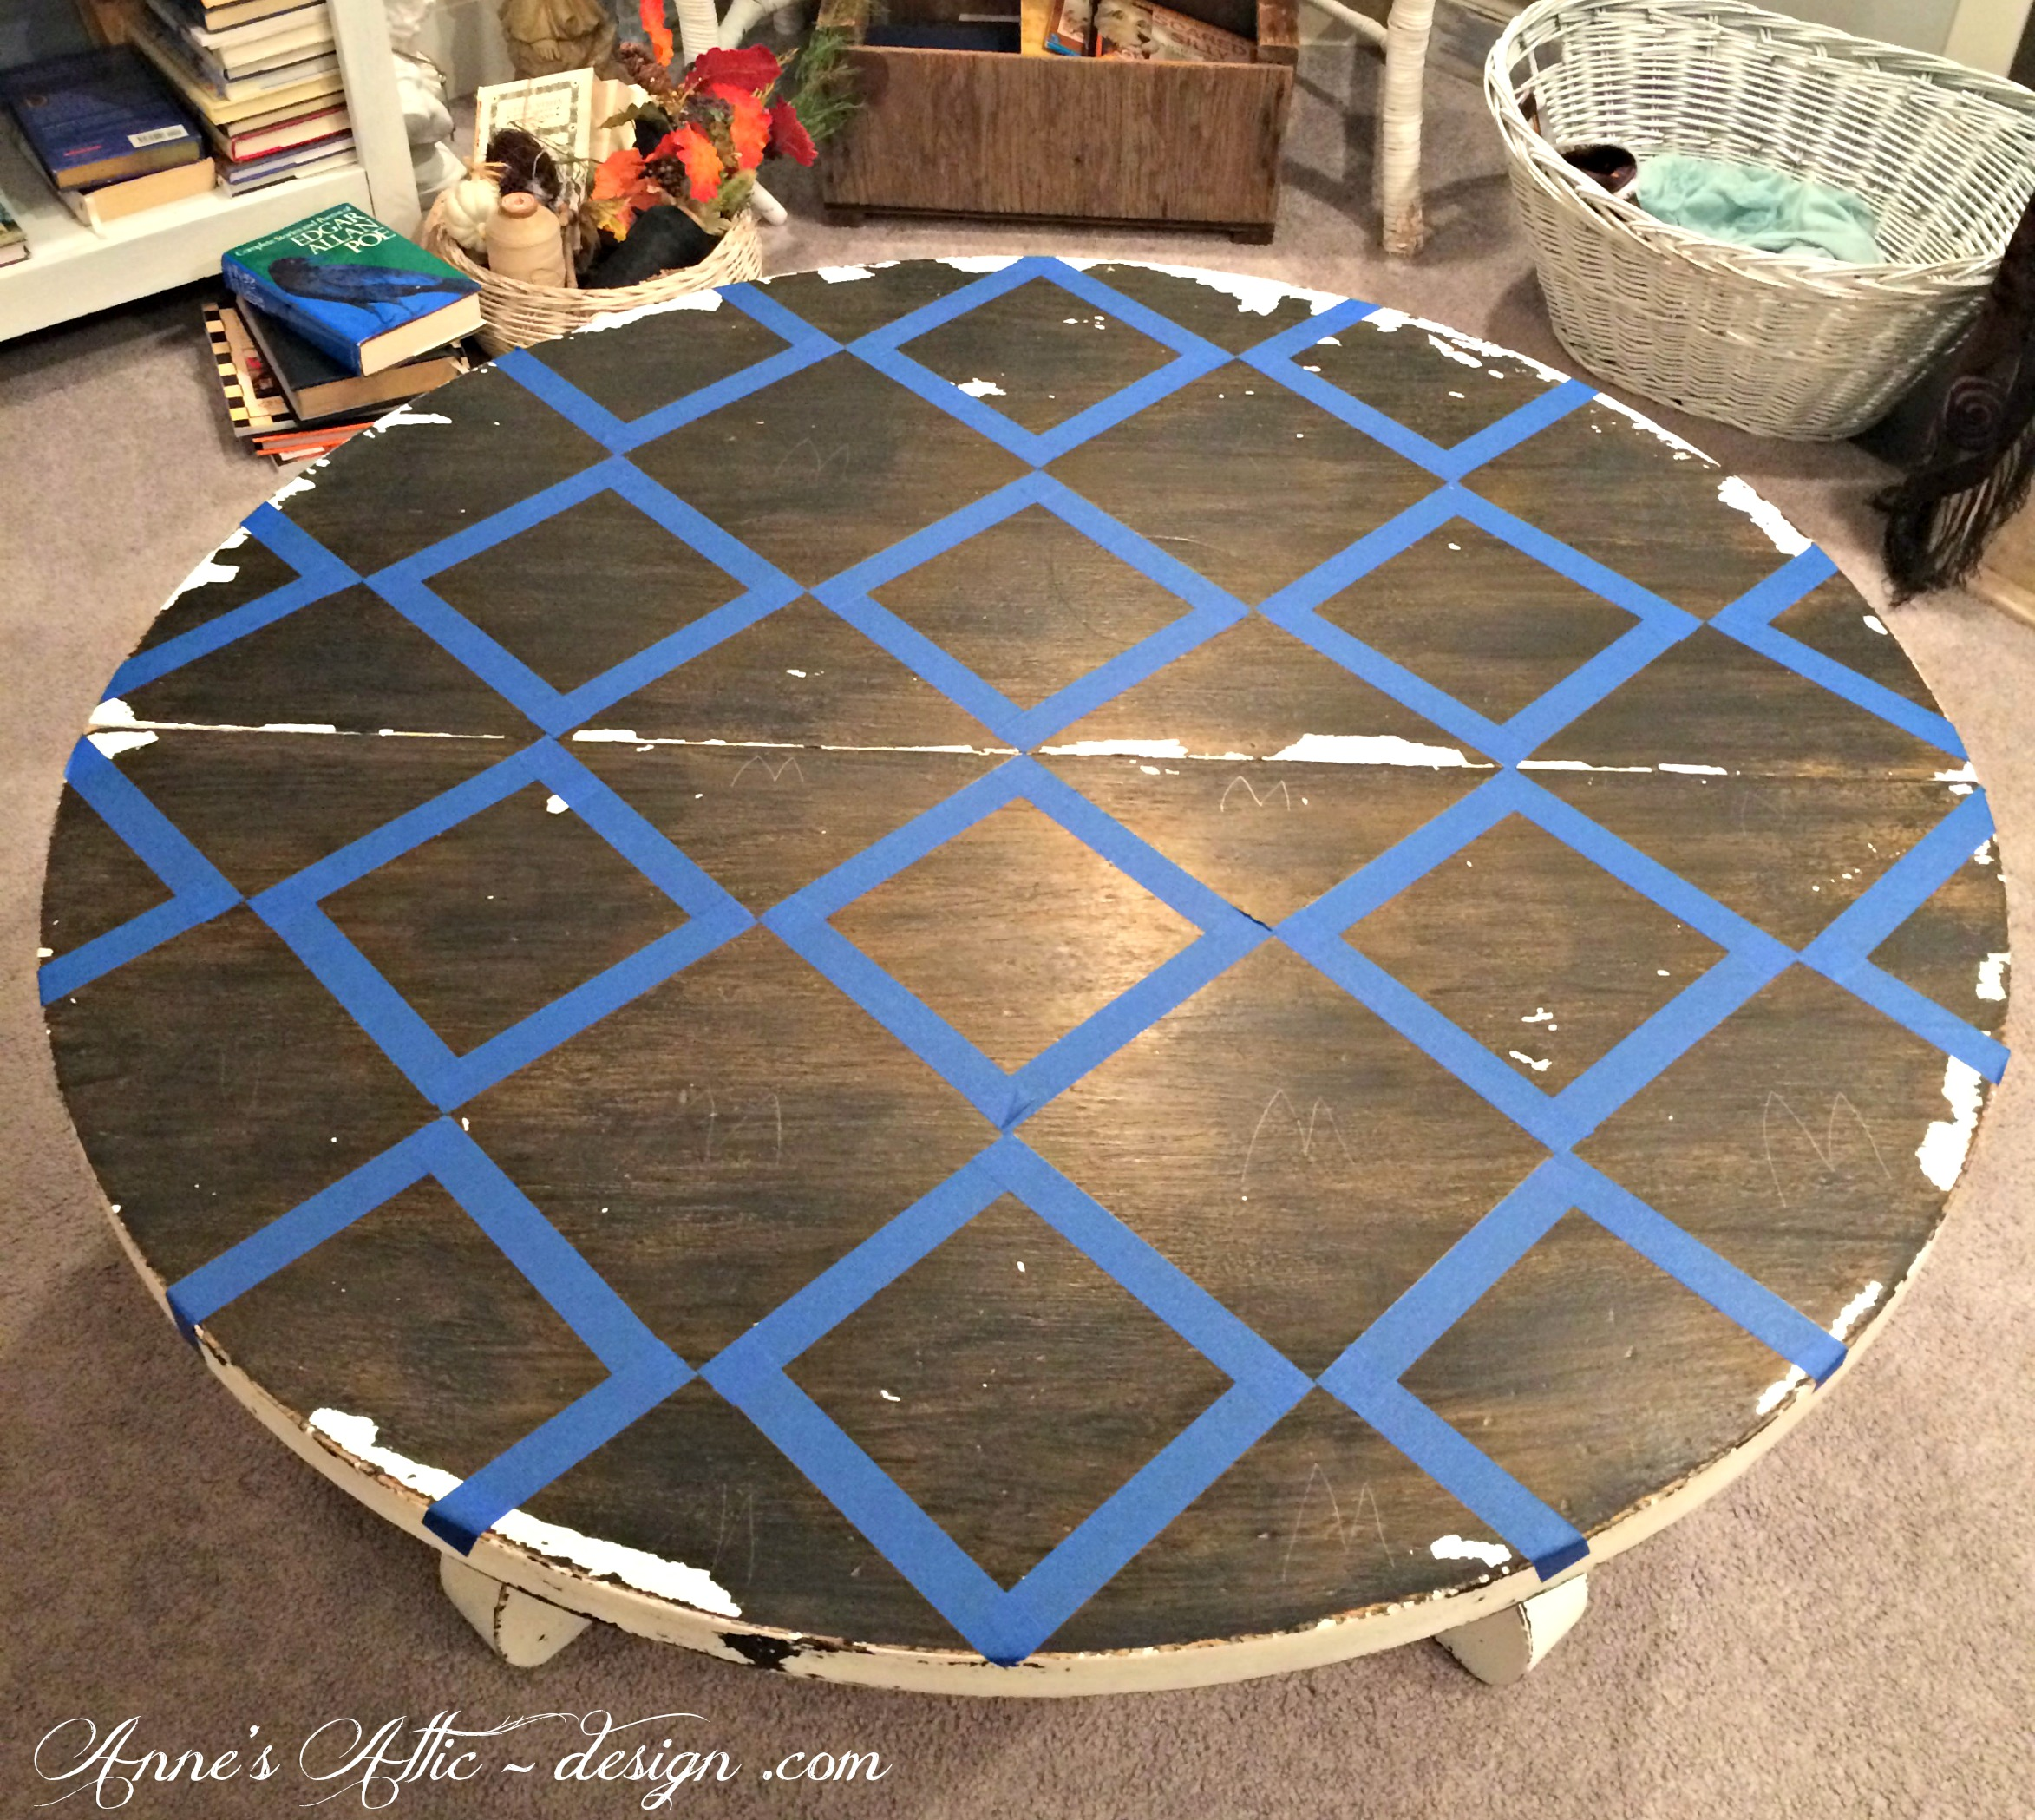 Wonderful Table Taped